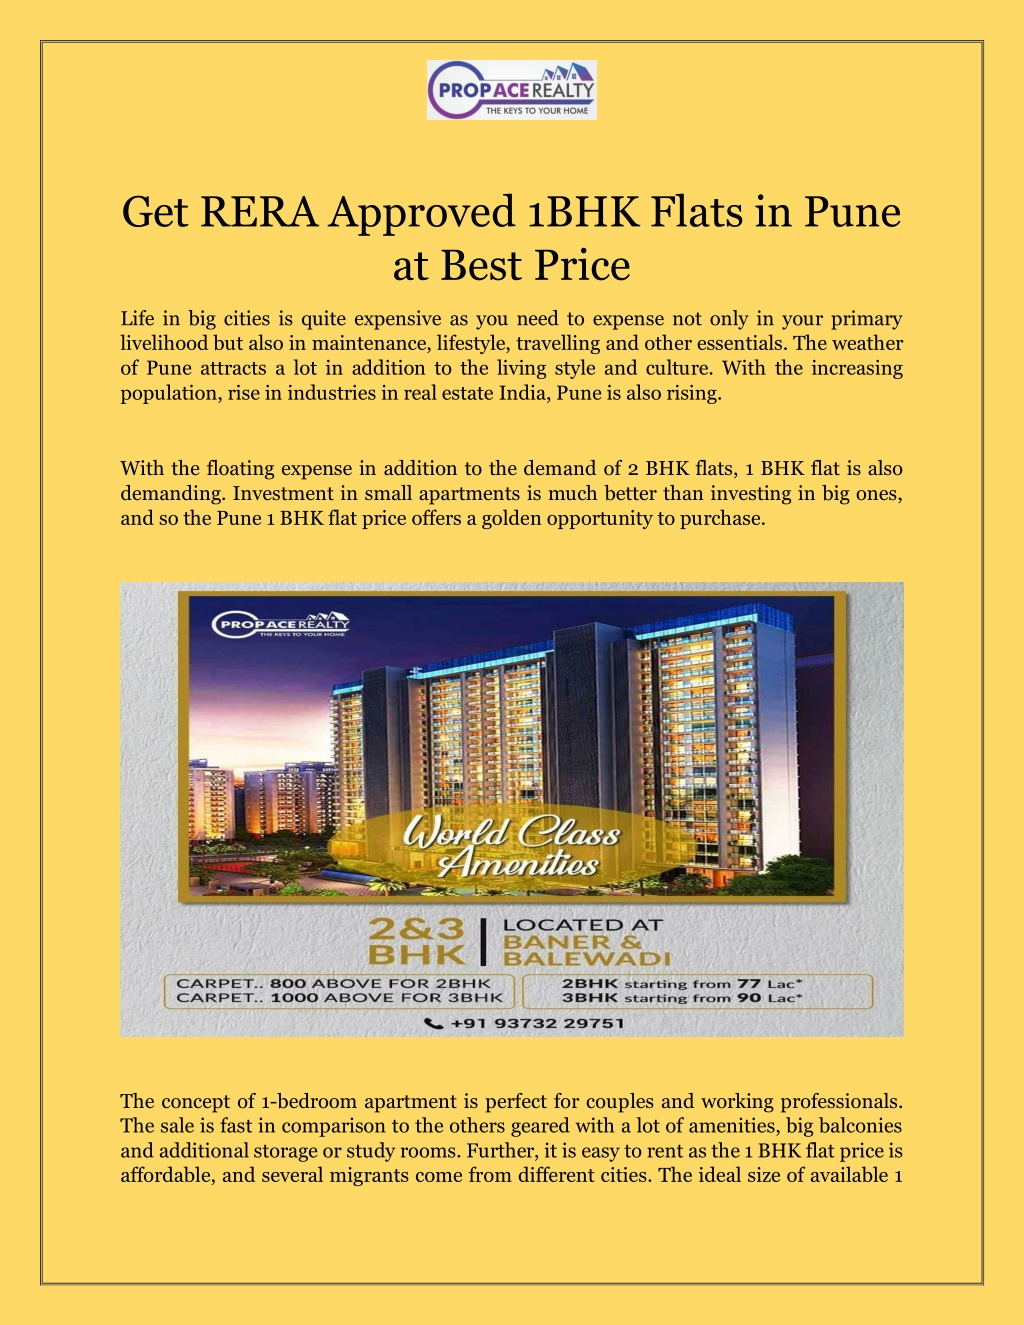 Get RERA Approved 1 BHK Flats in Pune at Best Price!